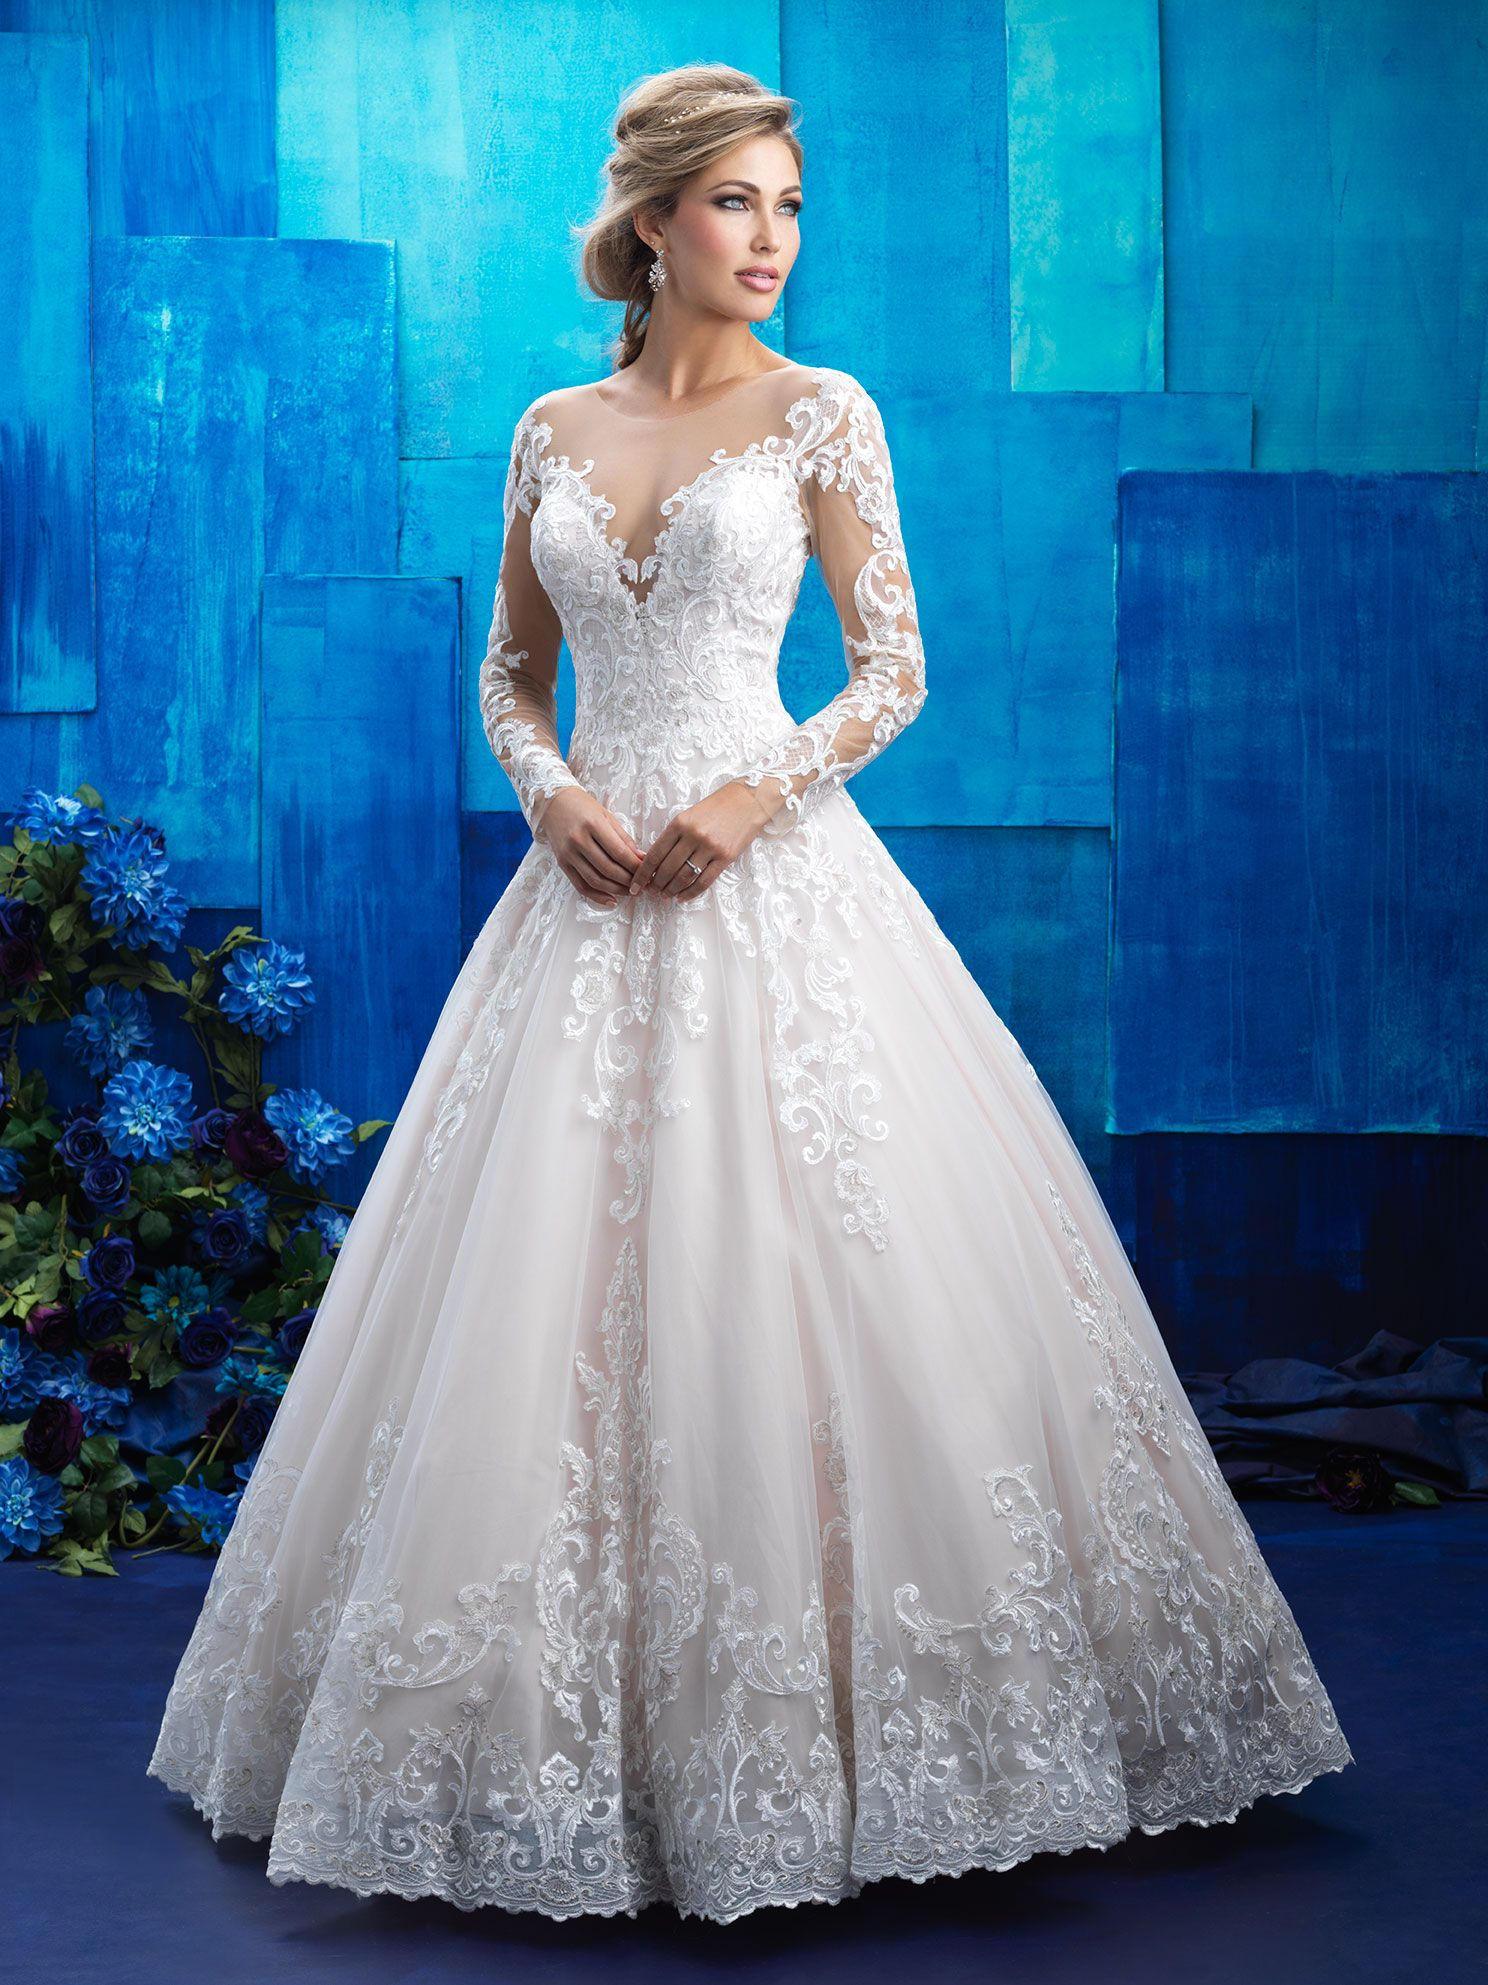 Romantic and regal 78b1ab2d4a12